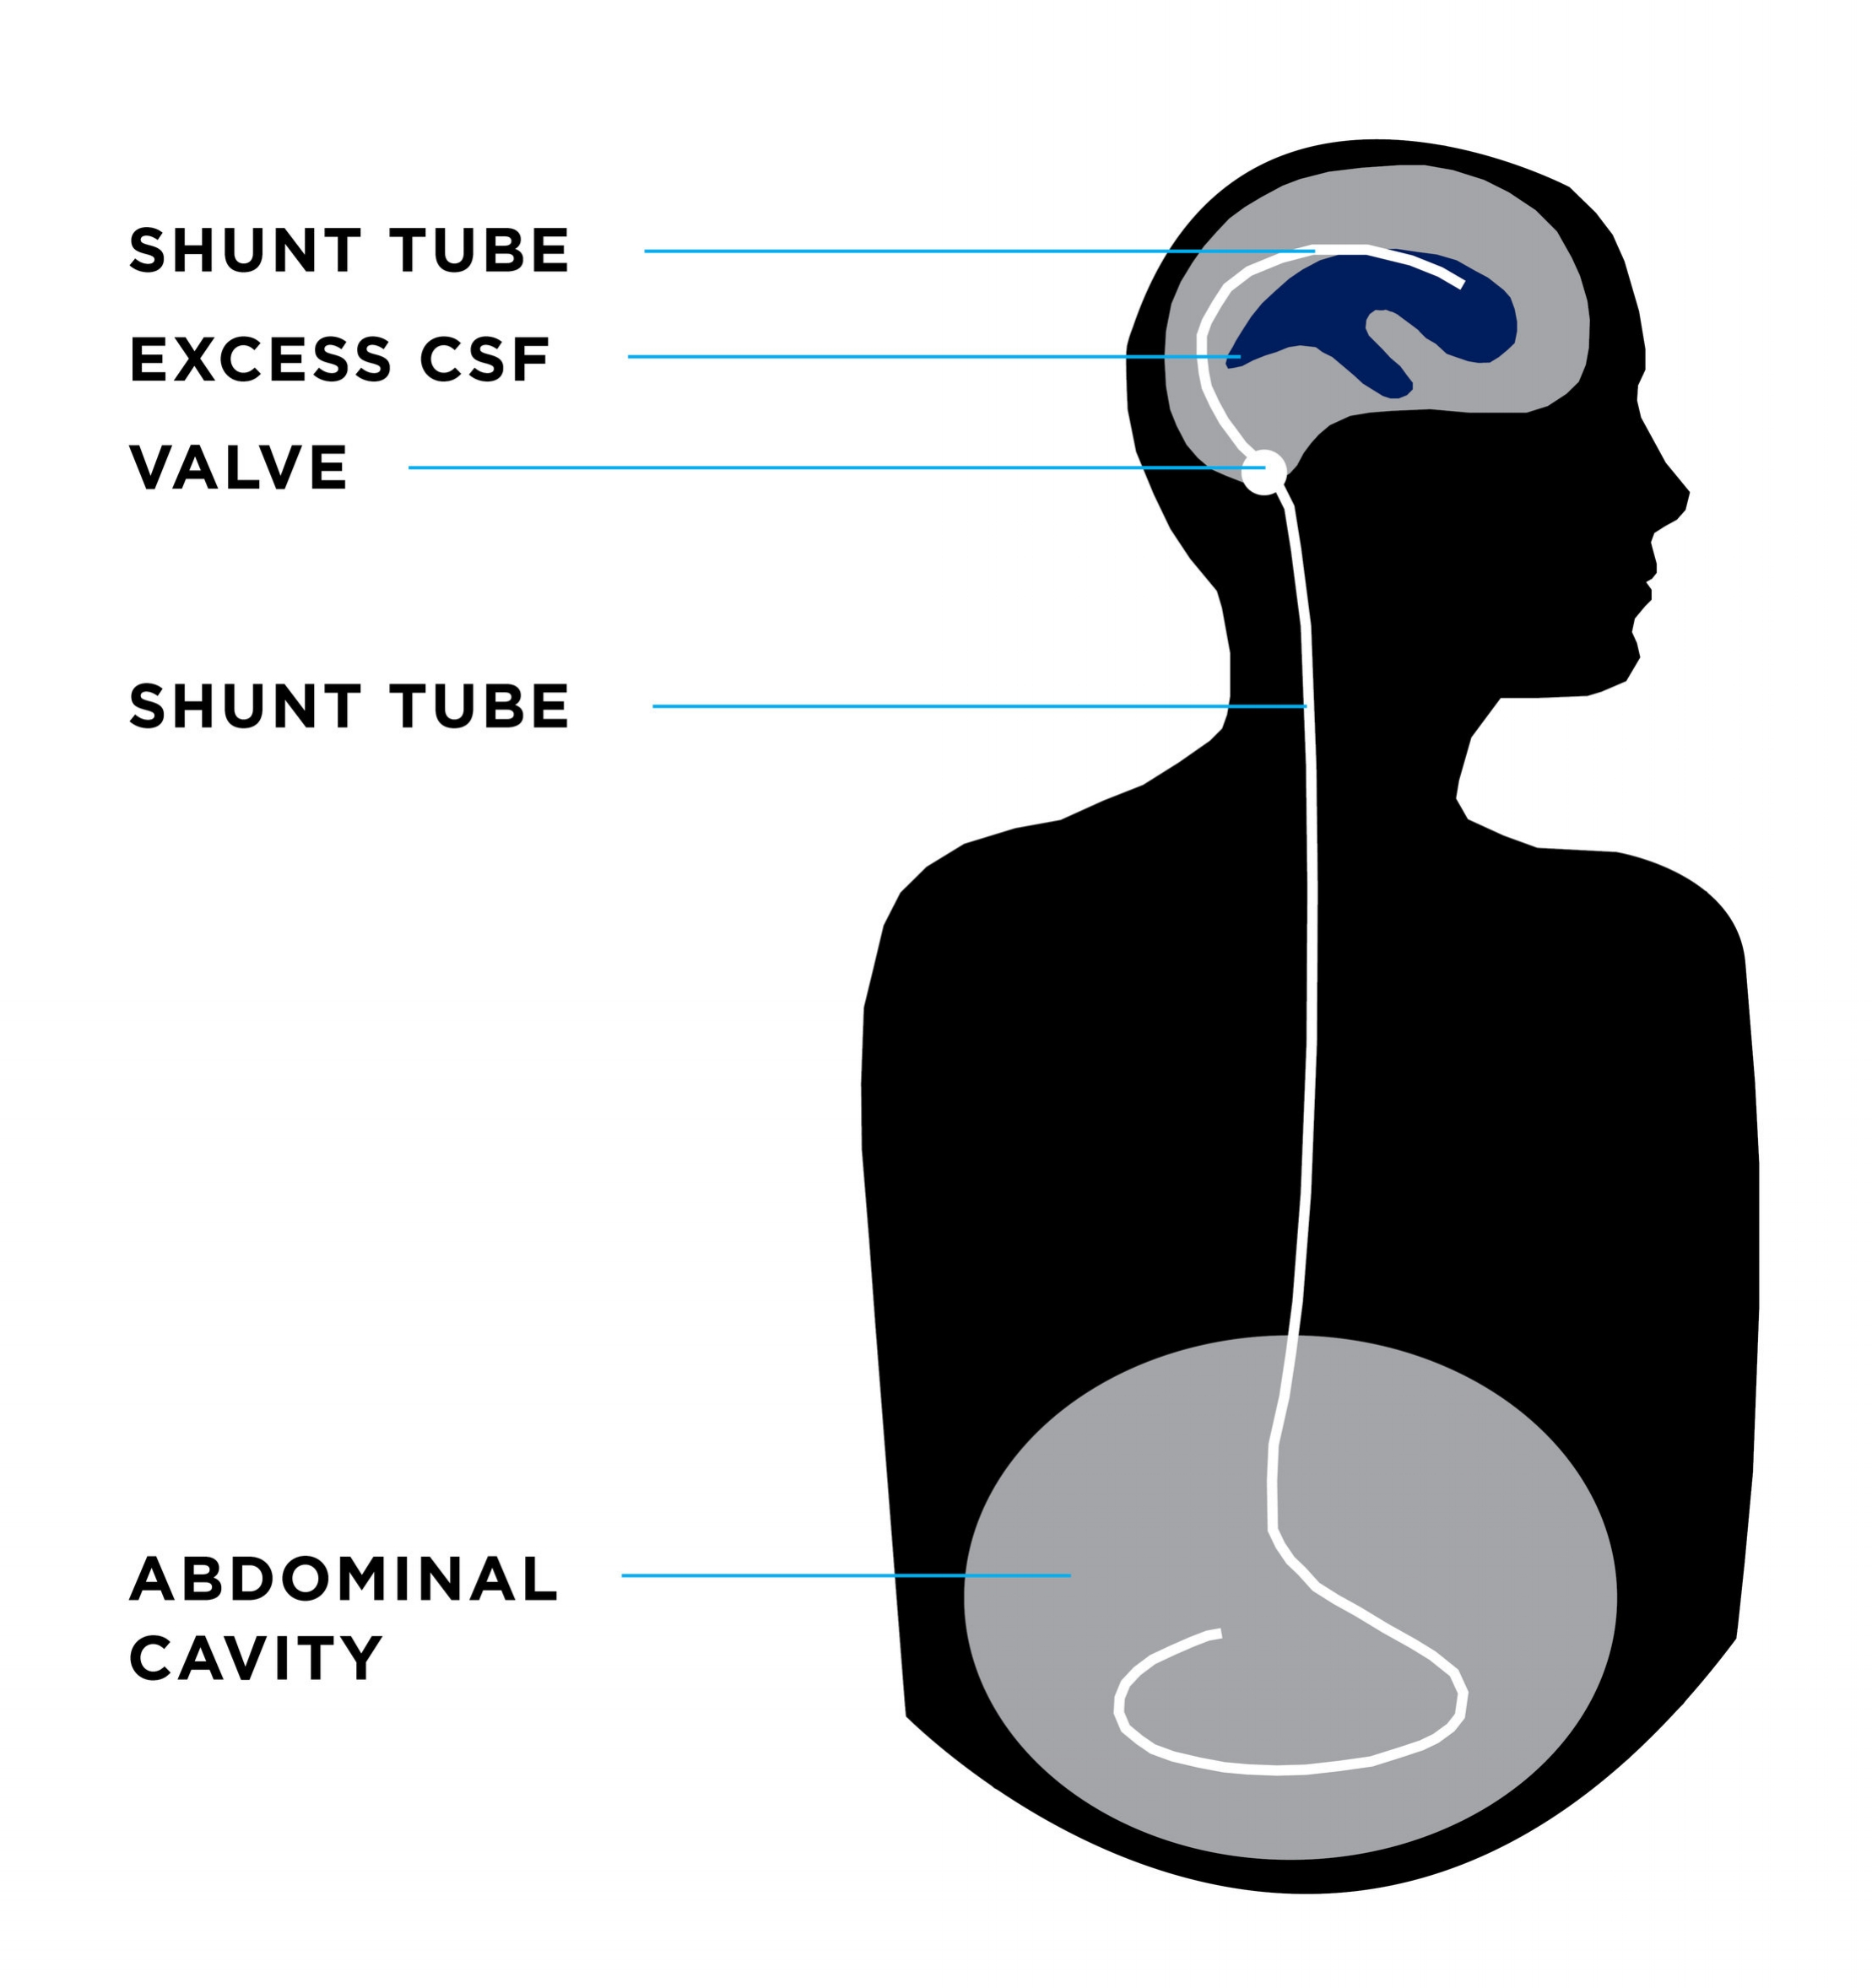 Treatment - There is currently no known way to prevent or cure hydrocephalus and the only treatment option today requires brain surgery. The most common treatment for hydrocephalus—and the most common procedure performed by pediatric neurosurgeons in the United States—is the surgical implantation of a device called a SHUNT. A shunt is a flexible tube placed into the ventricular system of the brain which diverts the flow of CSF into another region of the body, most often the abdominal cavity, where it can be absorbed.